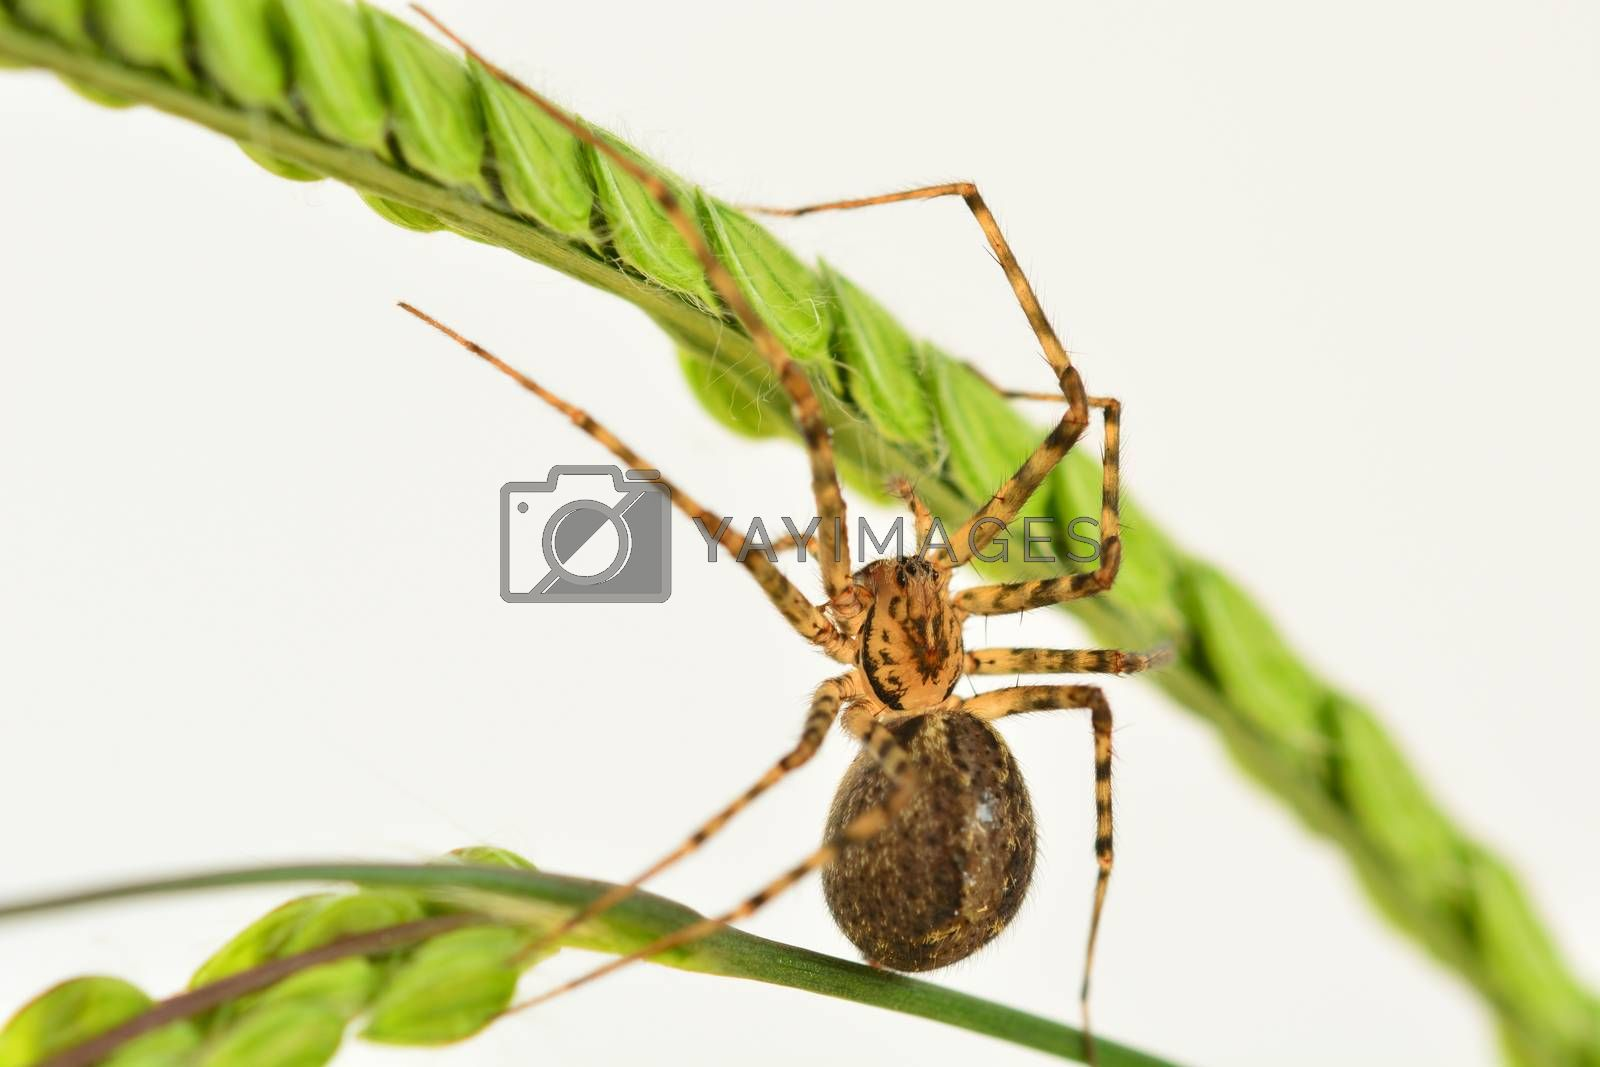 Common house spider, the most common spider in the world